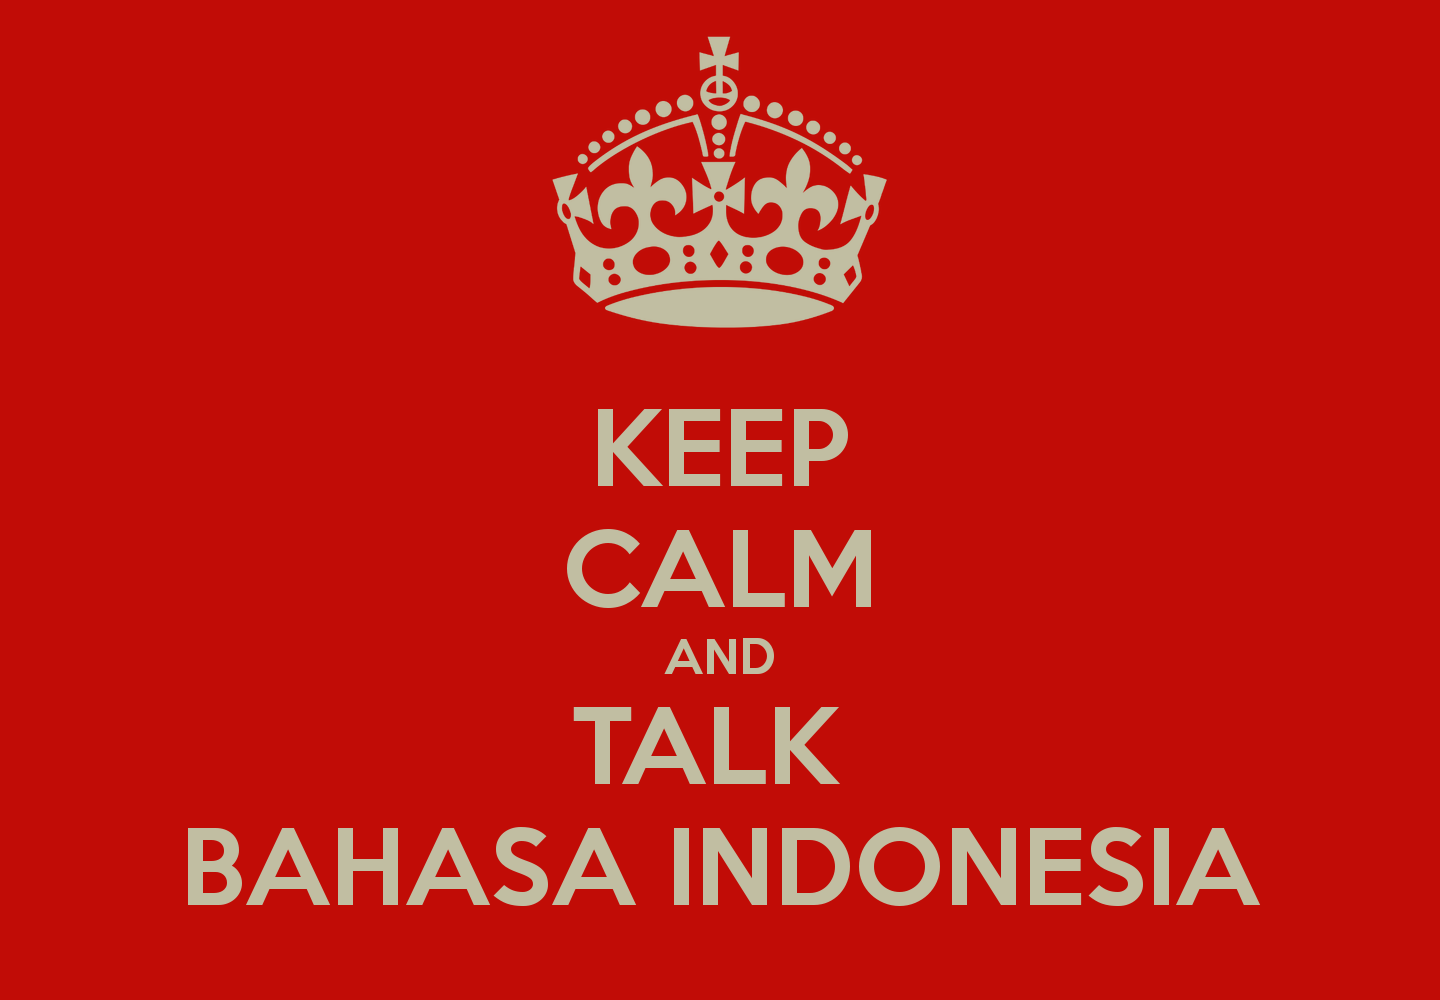 https://i2.wp.com/2.bp.blogspot.com/-PlR4XUtV1OM/UvEFxgftxlI/AAAAAAAAACw/UmhZrTHfMWc/s1600/keep-calm-and-talk-bahasa-indonesia-2.png?resize=501%2C348